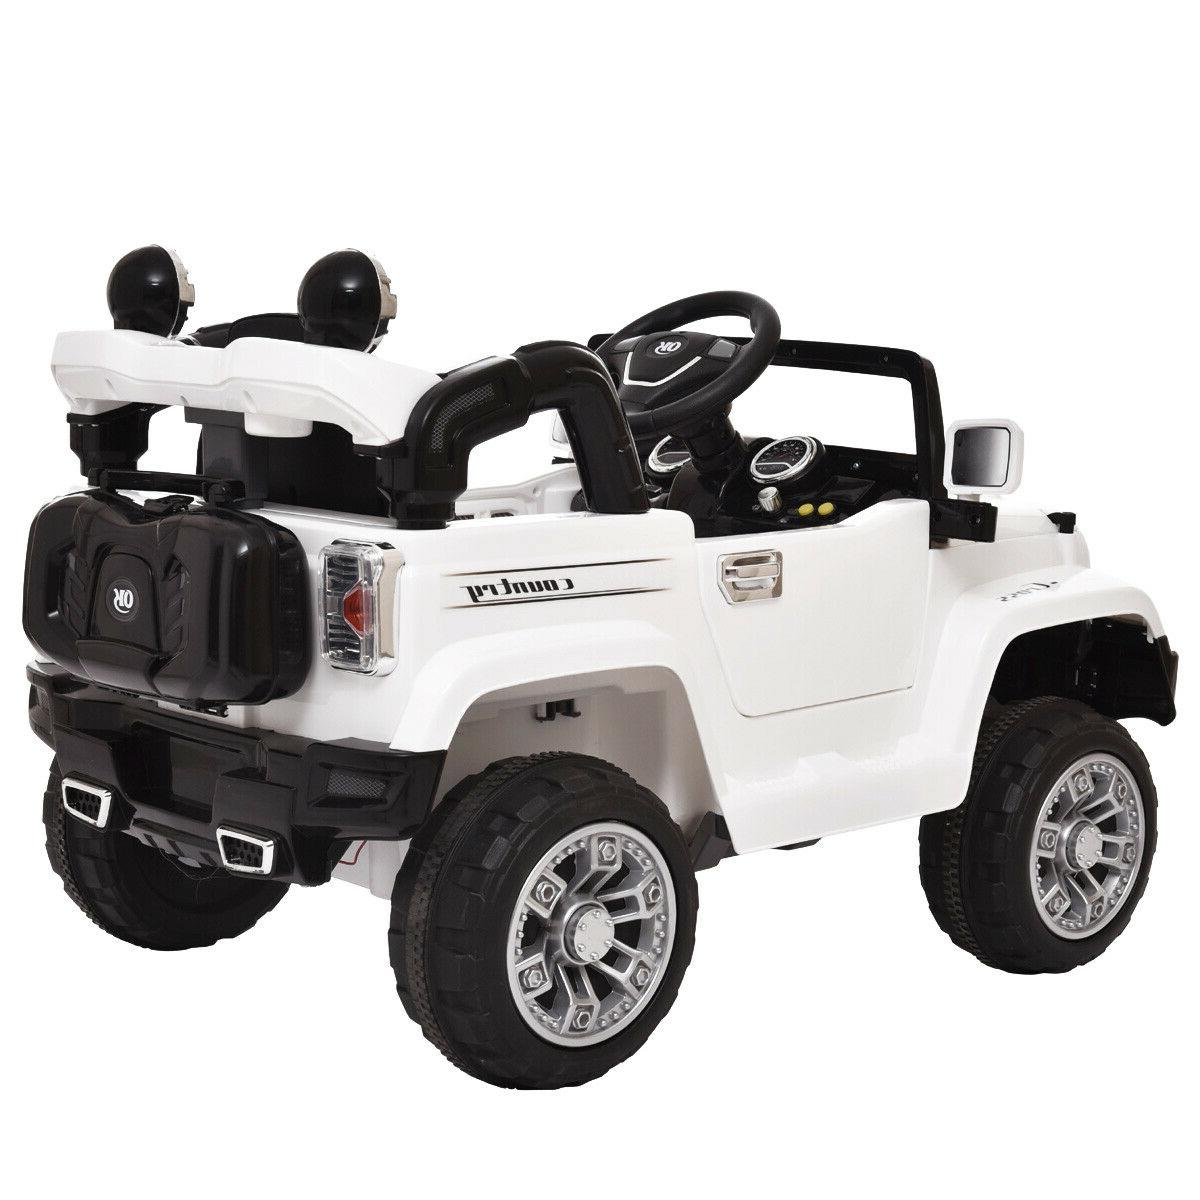 12V On Car Battery Power Jeep W/ White